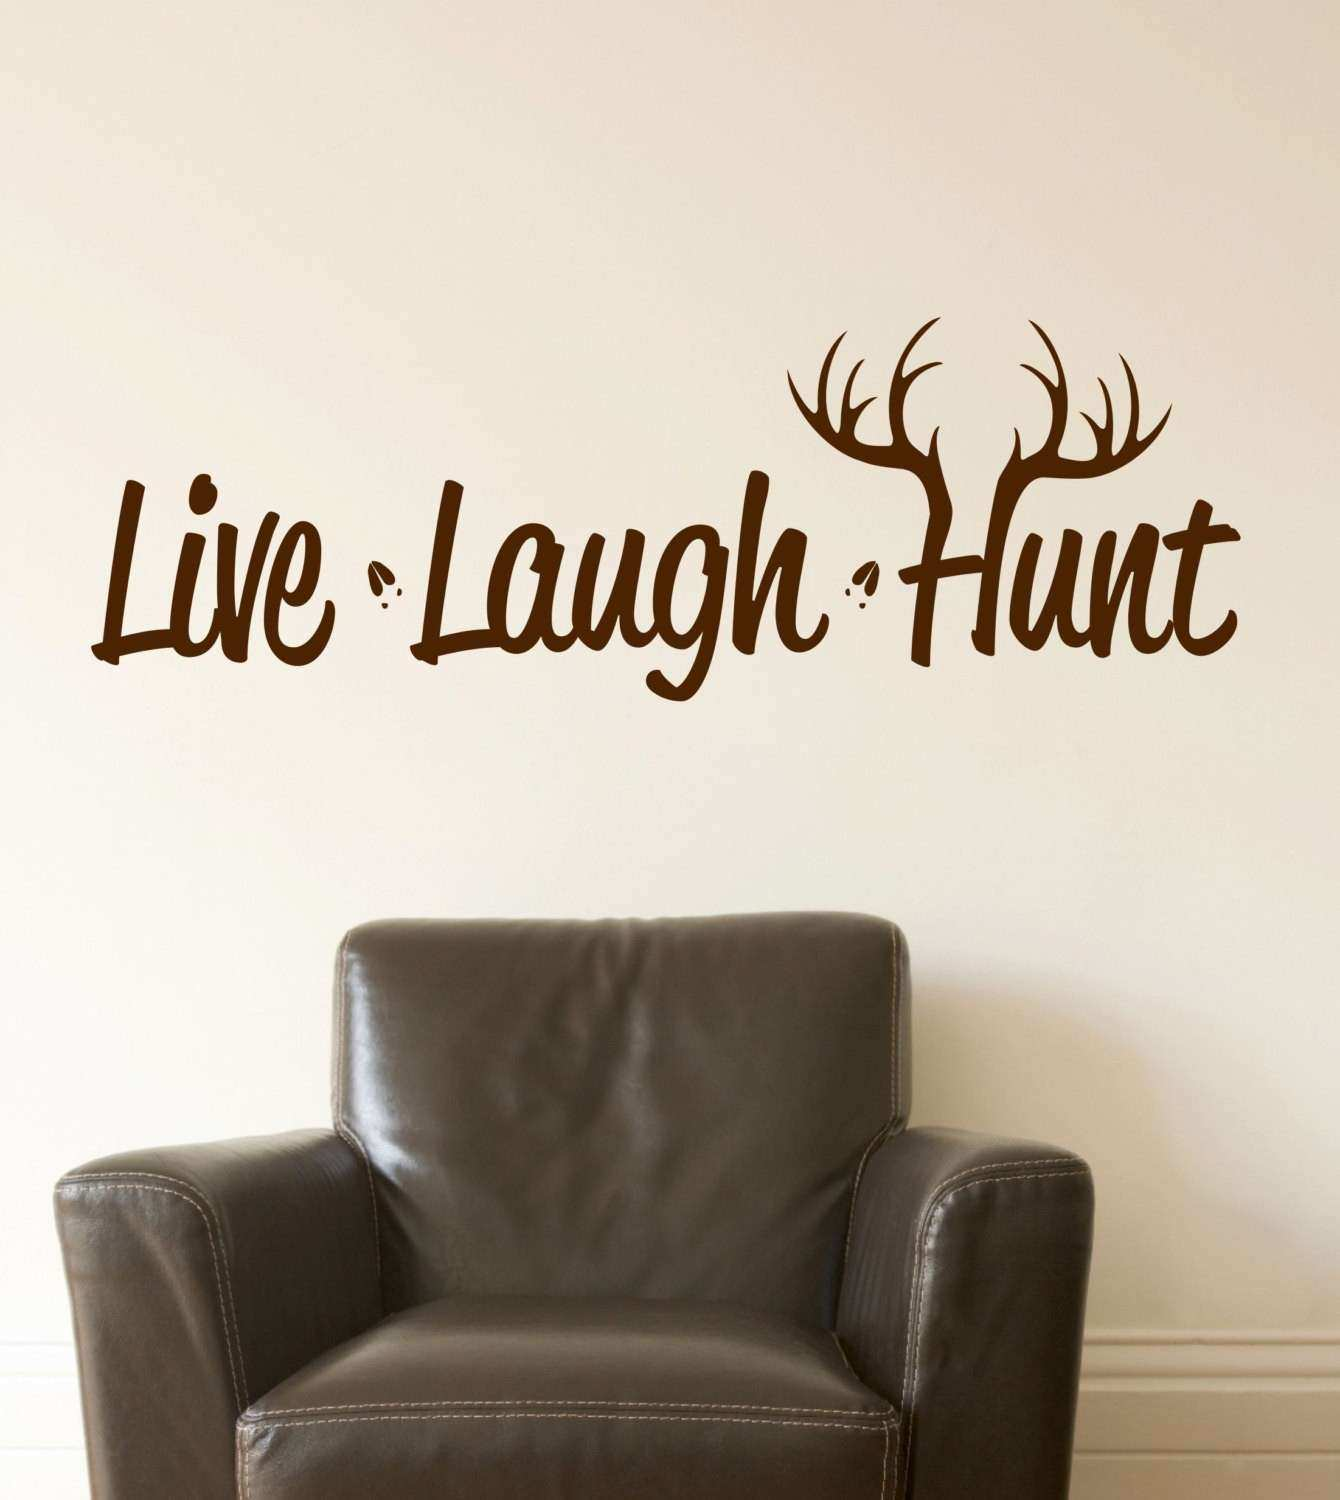 How to Print Vinyl Wall Decals Best Of Live Laugh Hunt Wall Decal Hunting Decor Deer Antler Decal